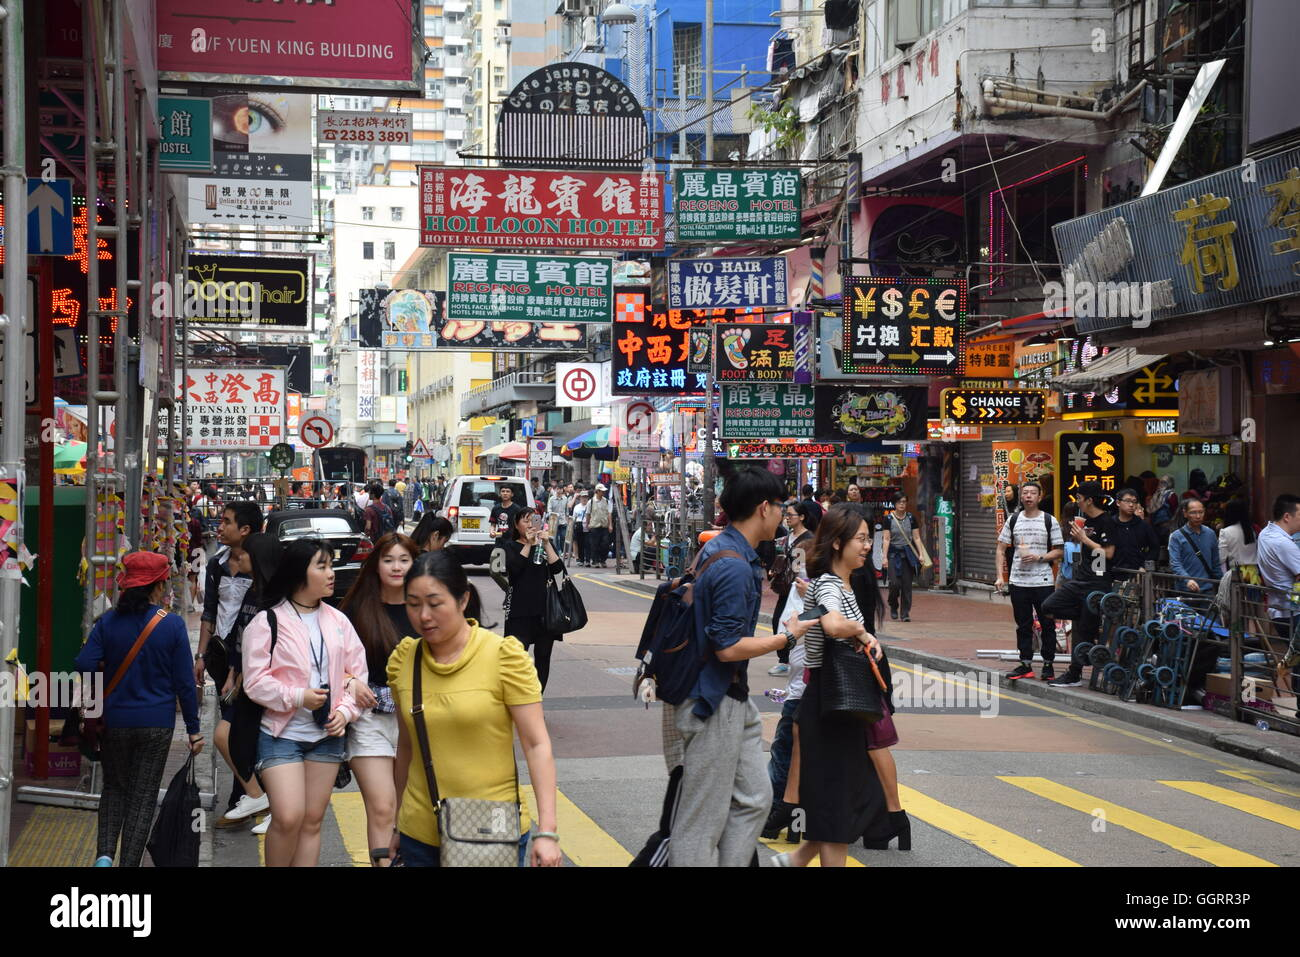 Signboards on the streets of Kowloon, Hong Kong S.A.R., China - Stock Image